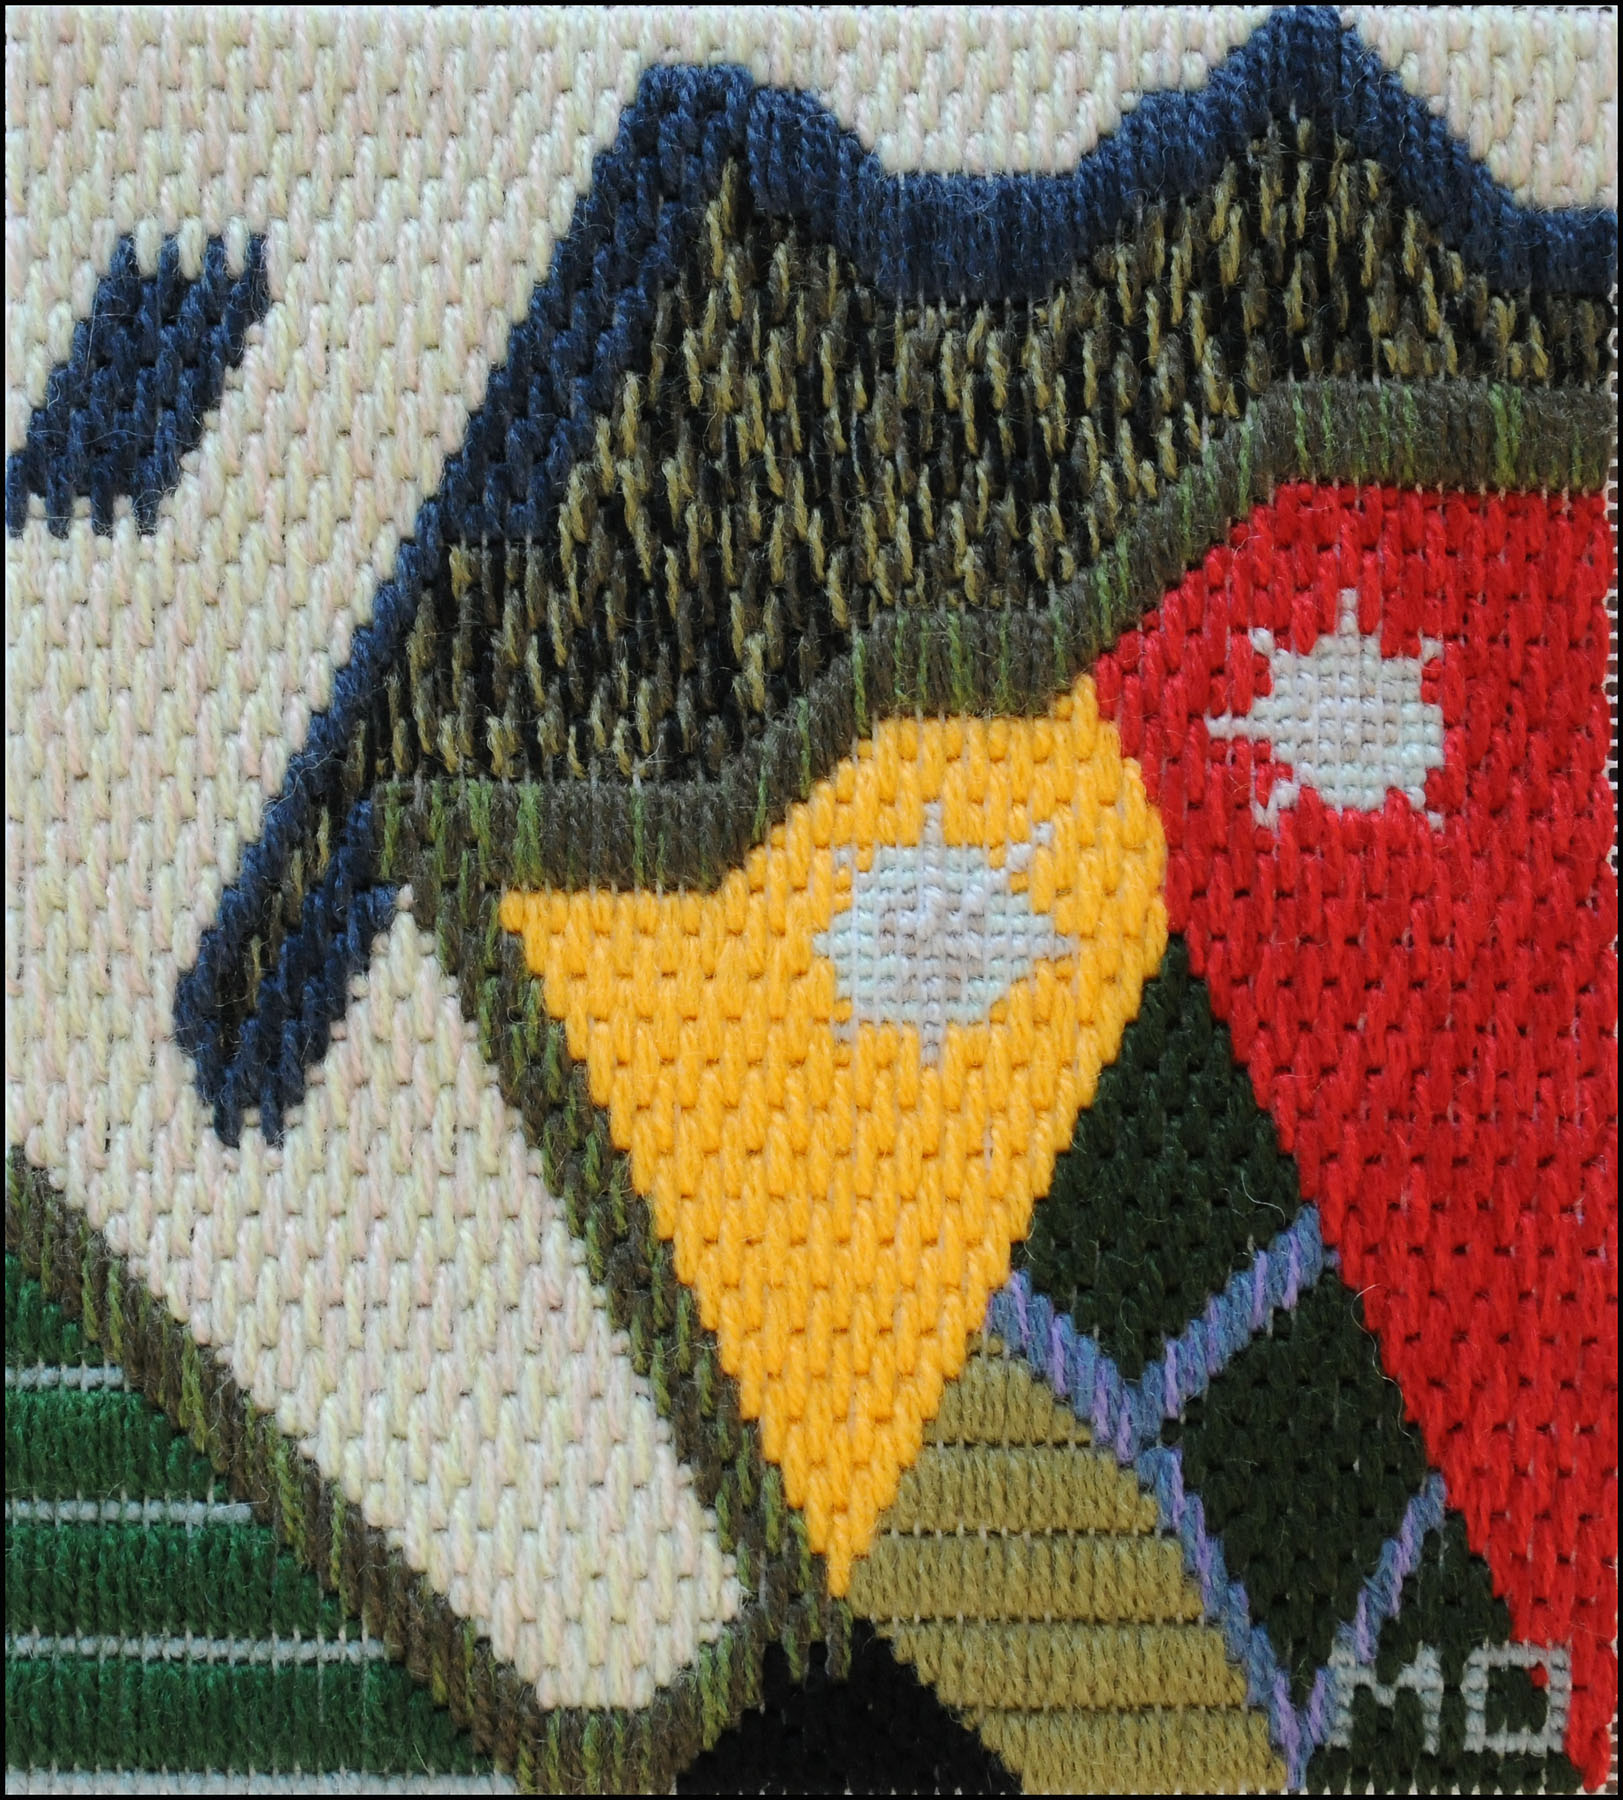 Mark Olshansky abstract needlepoint Garish Garnish